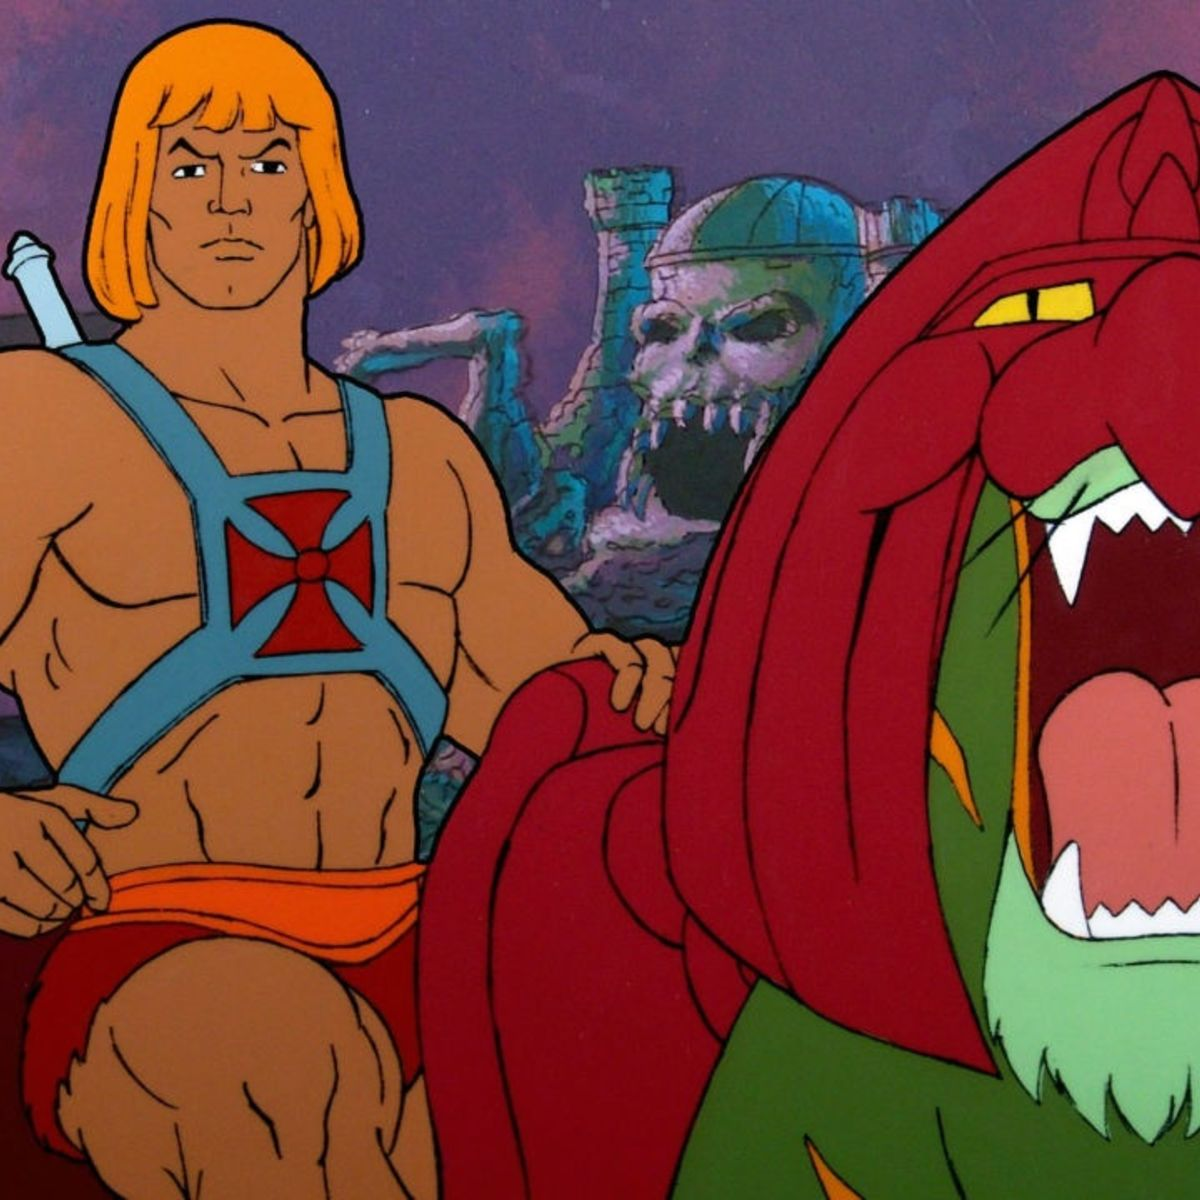 he-man-and-the-masters-of-the-universe-movie-reboo_y3hb.1920.jpg